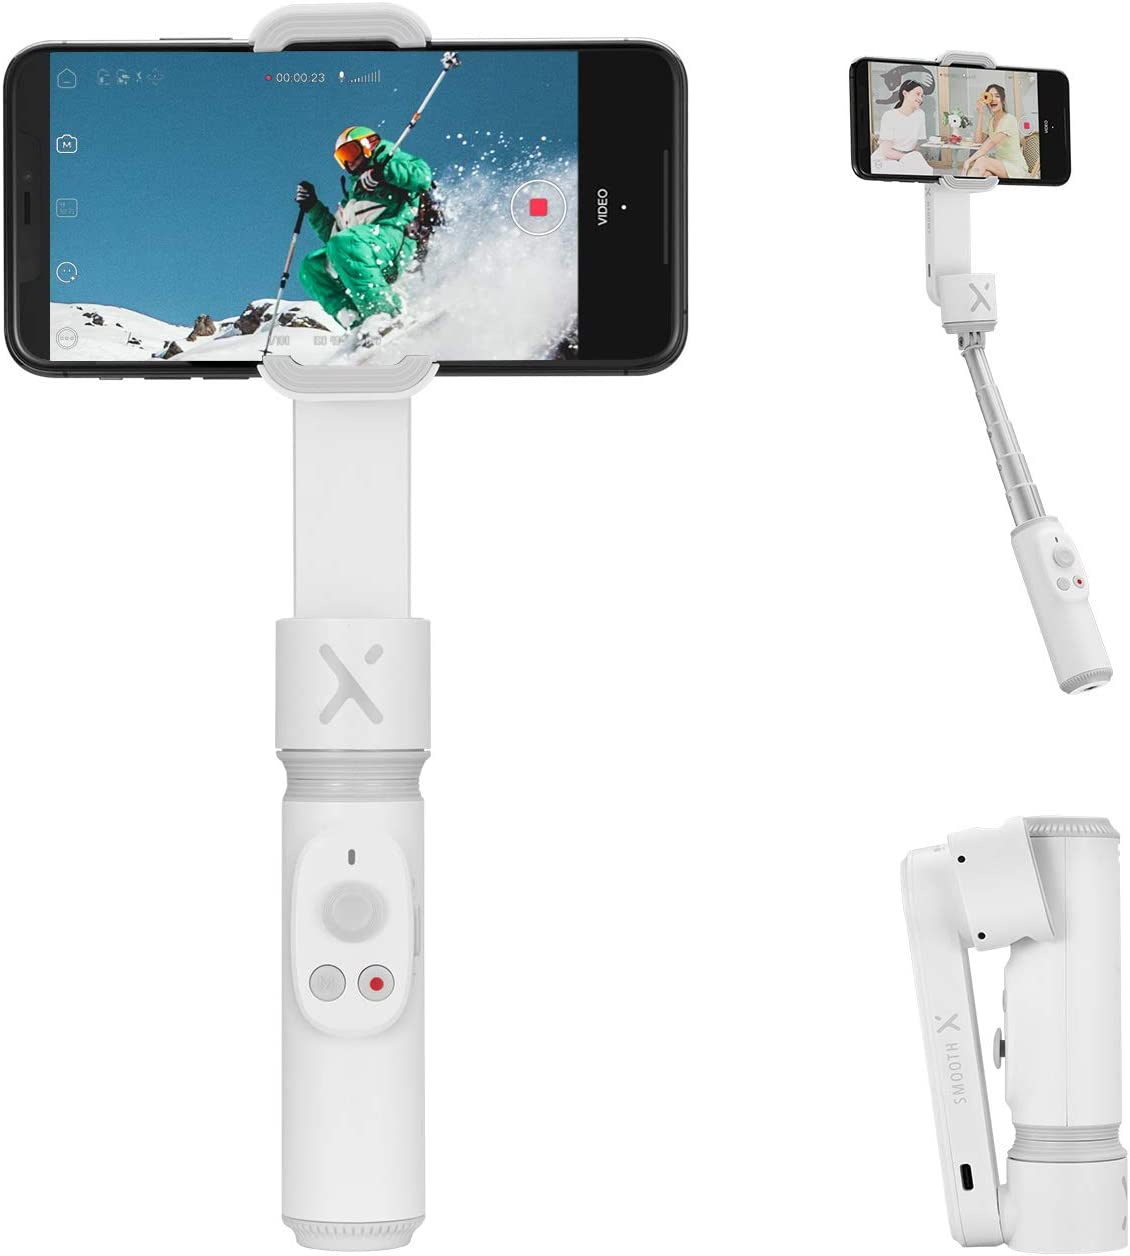 White Zhiyun Smooth Xs Handheld 3-Axis Gimbal Stabilizer for Smartphone Selfie Stick White for Vlog Youtuber